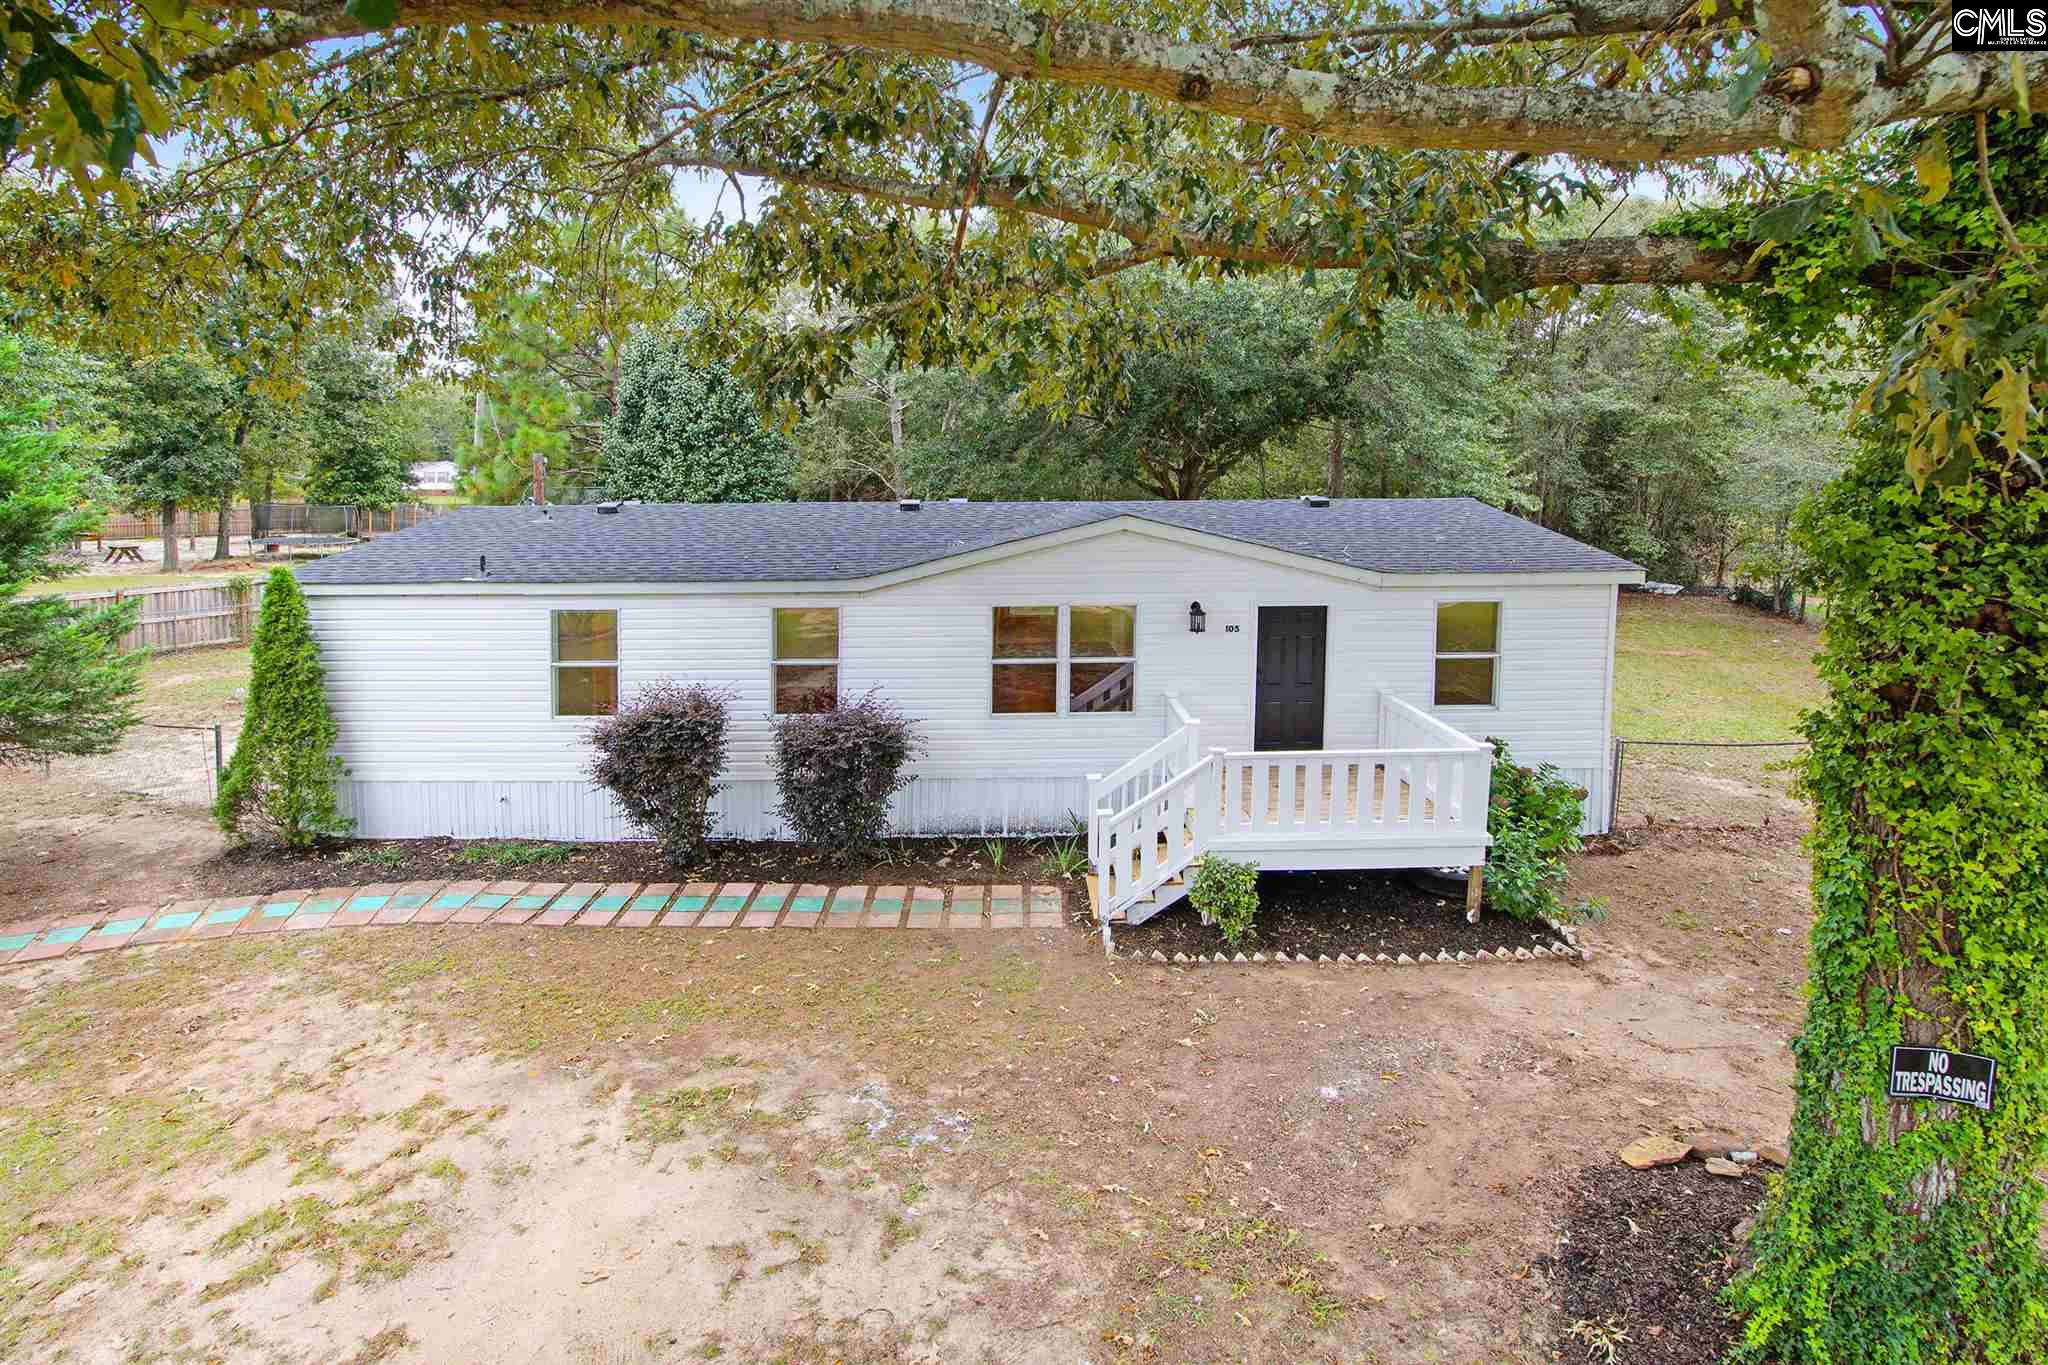 105 Glencrest Gaston, SC 29053